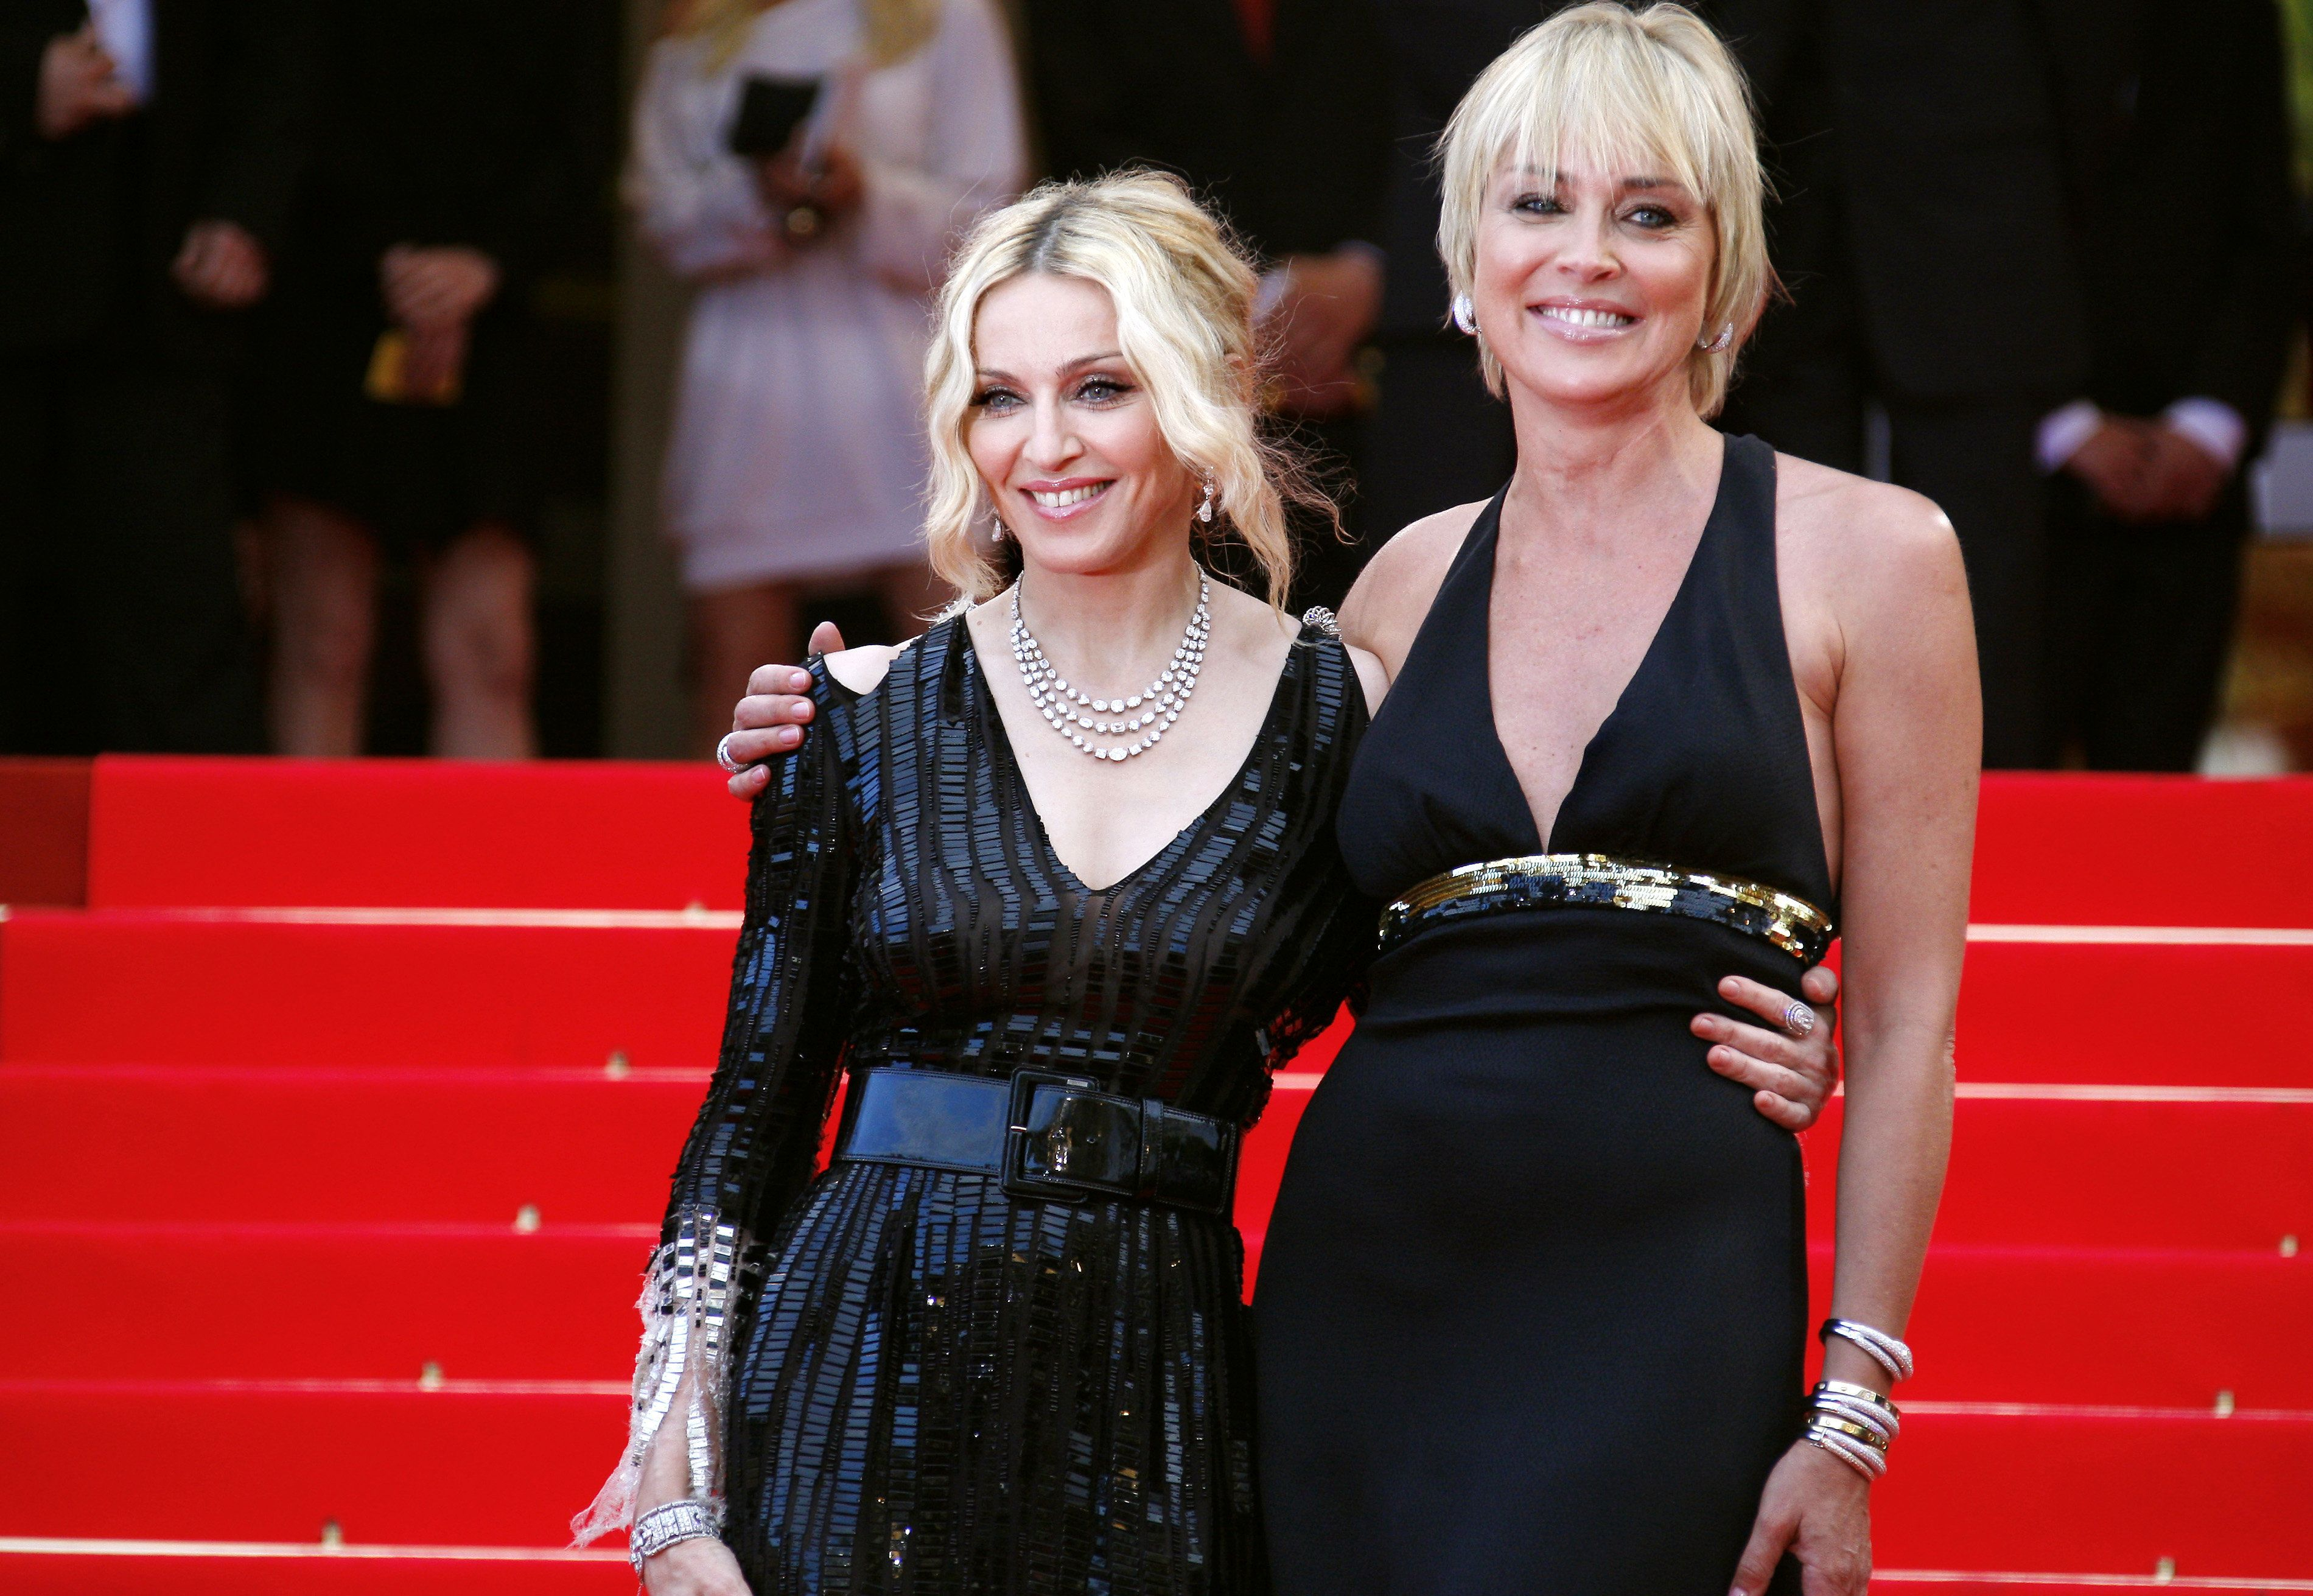 Sharon Stone Responds To Madonna After She's Branded 'Mediocre' By